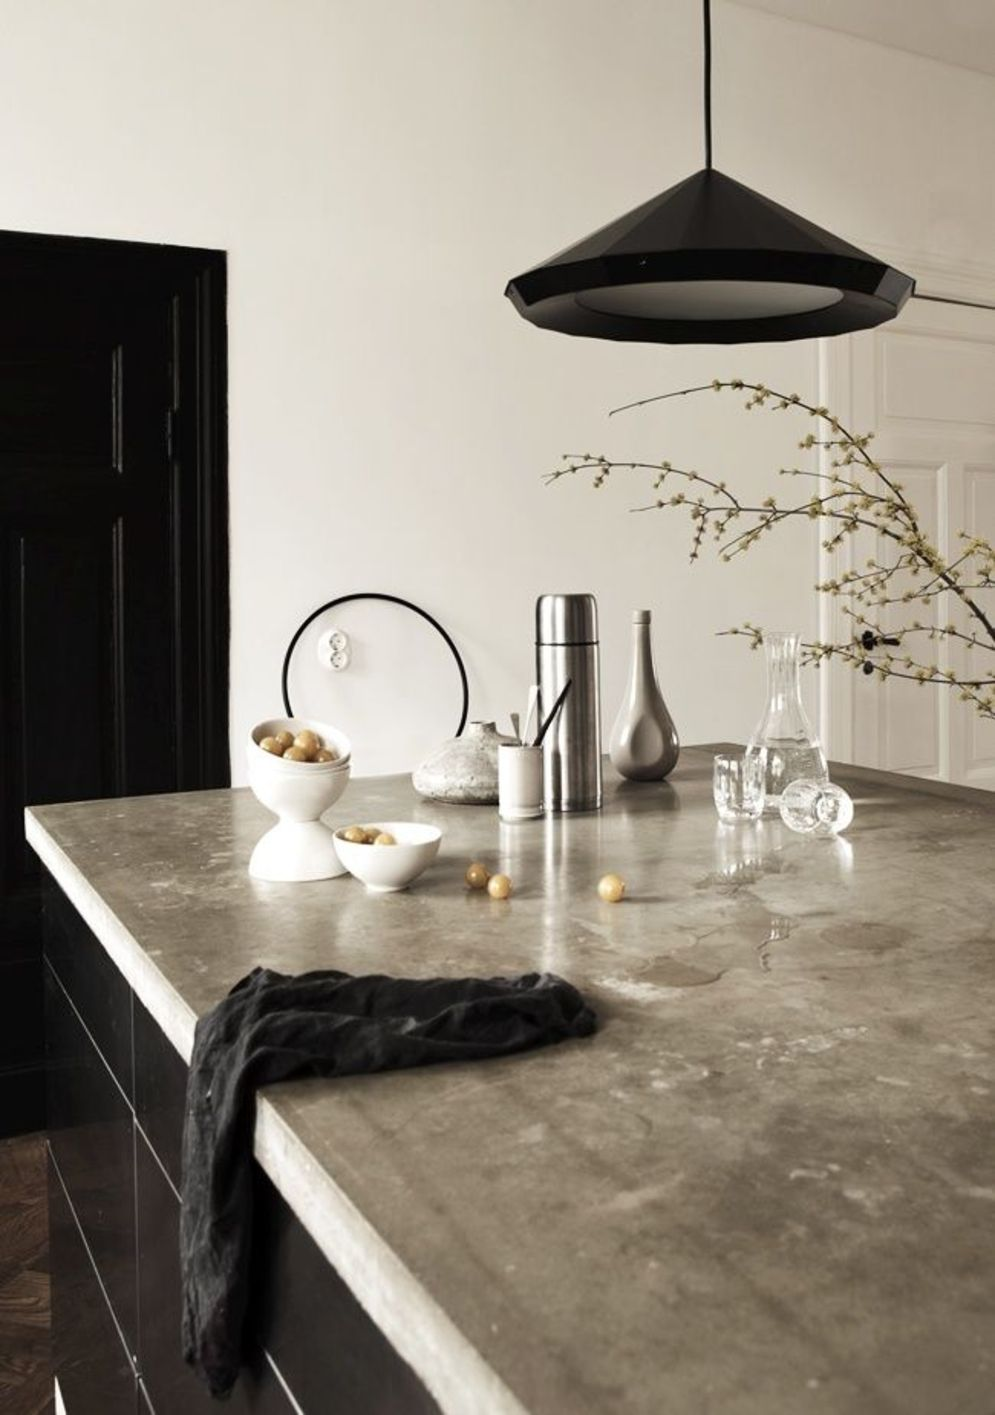 Classy kitchen styles in bold display maximizing concrete benchtop designs Image 5